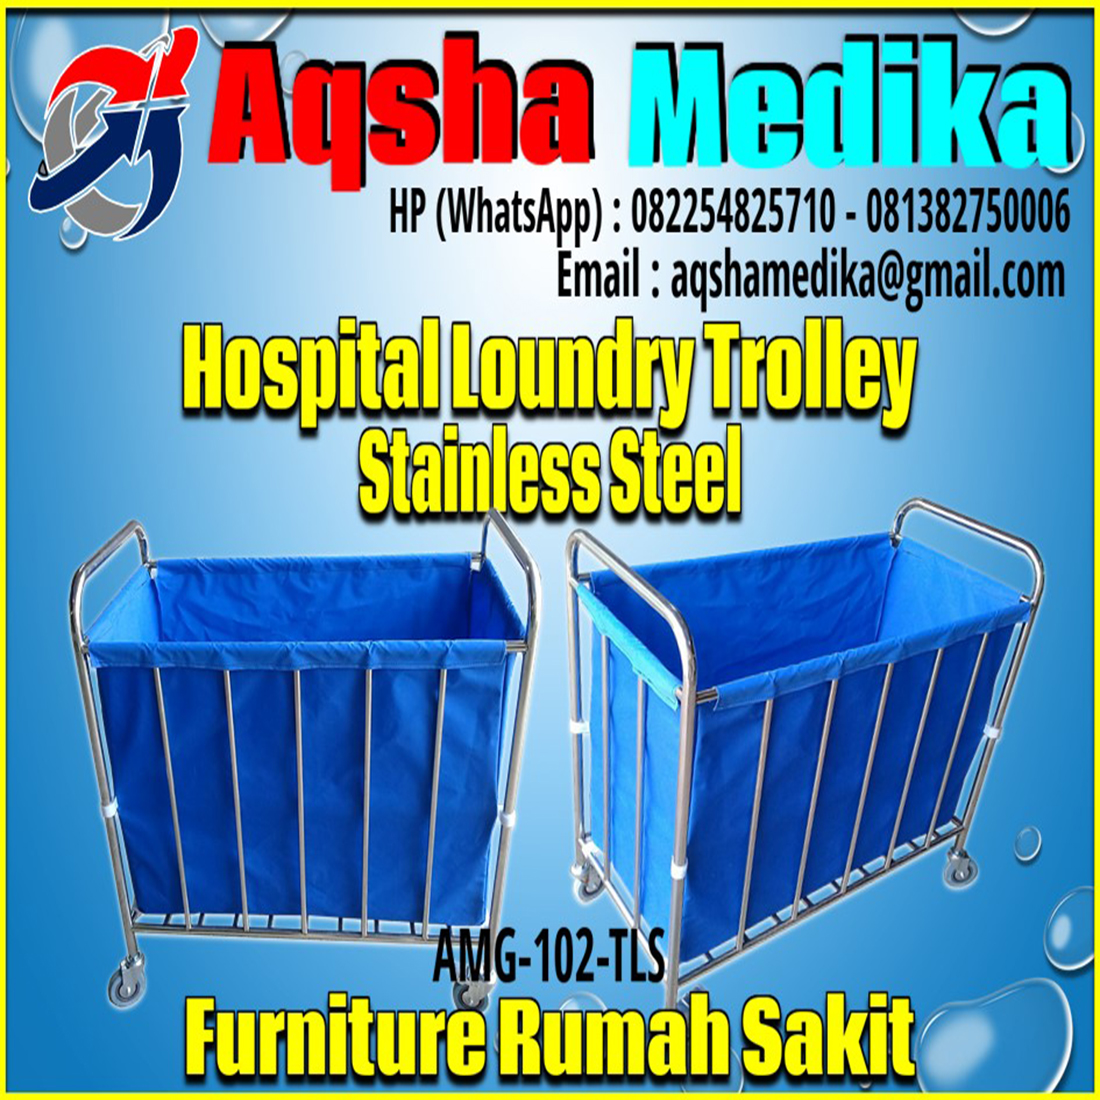 Hospital Loundry Trolley AMG-102-TLS